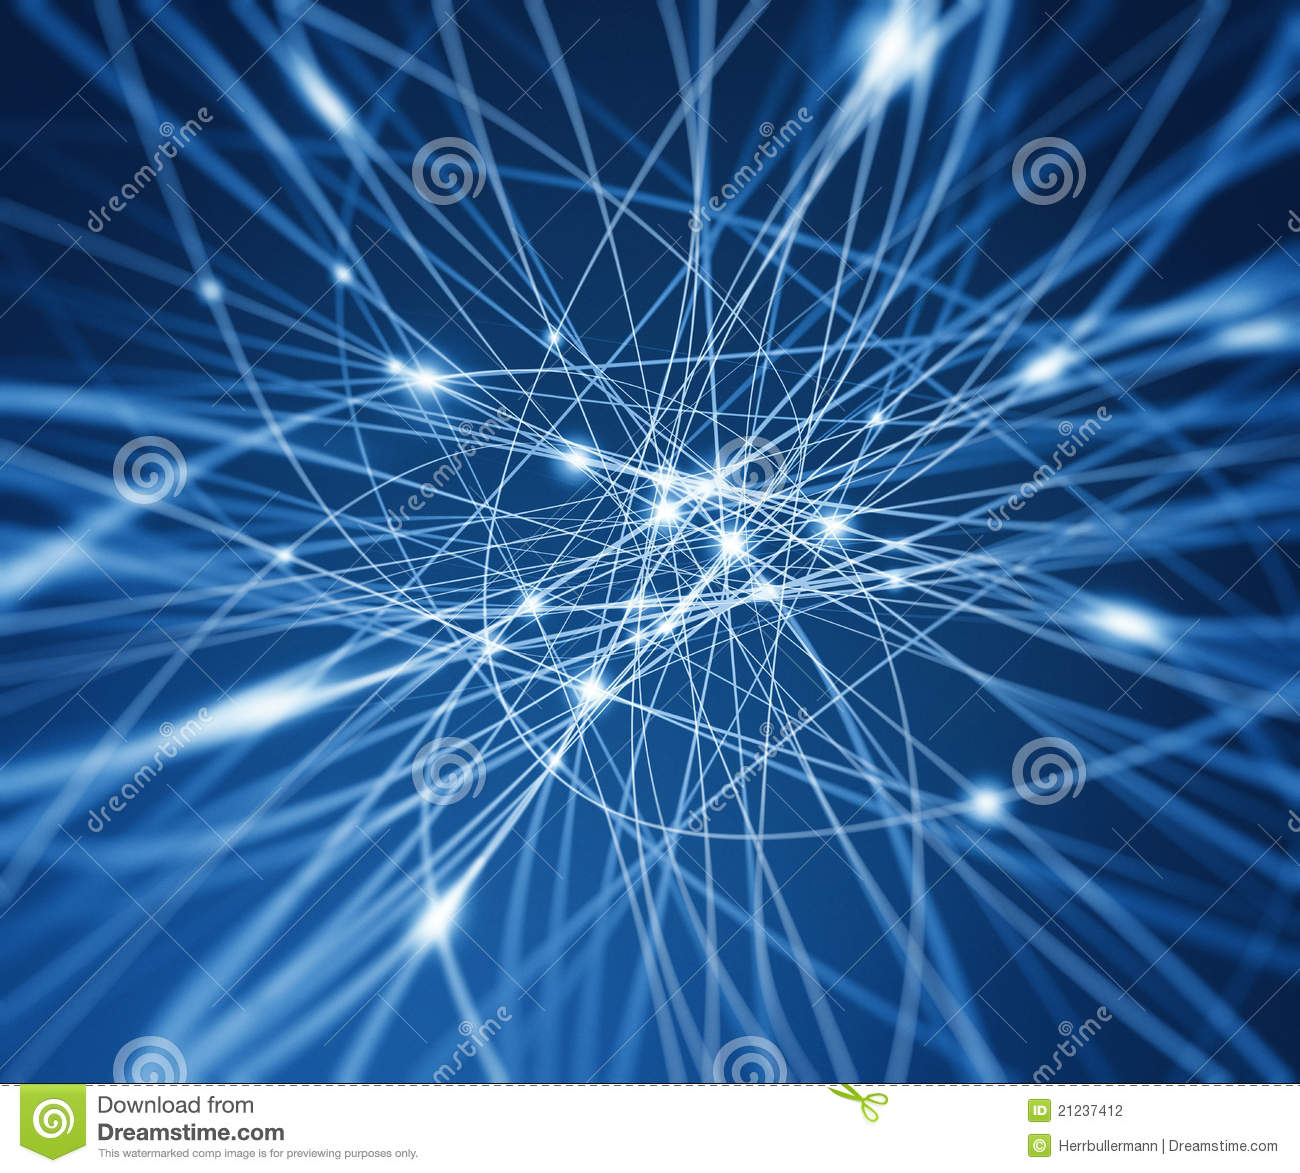 3d Wallpaper Blue Red Abstract Digital Network Stock Photography Image 21237412